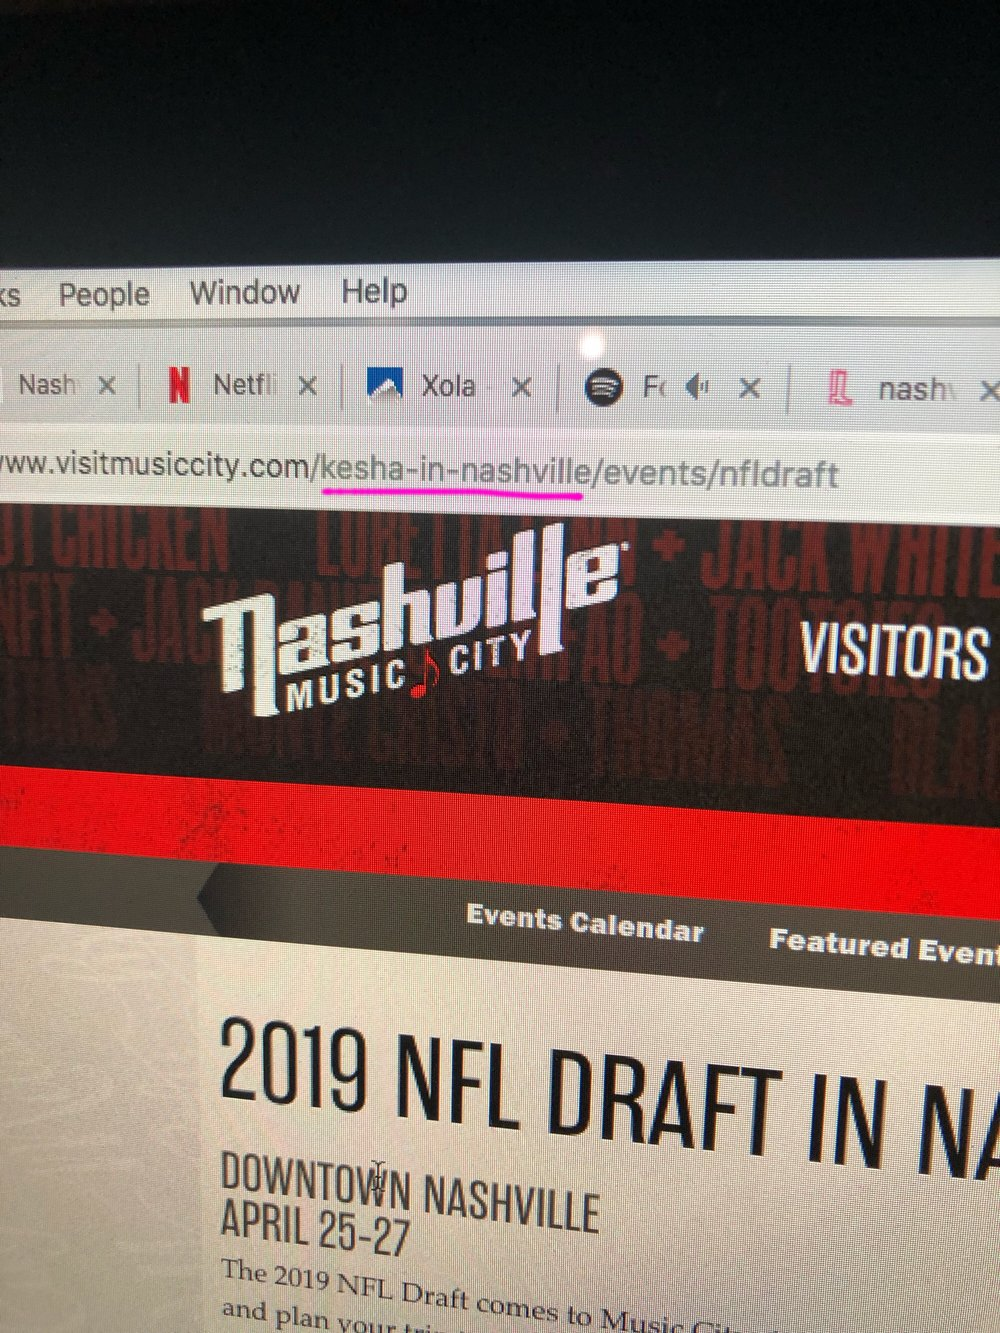 OMG could this mean Ke$ha is playing the NFL draft?